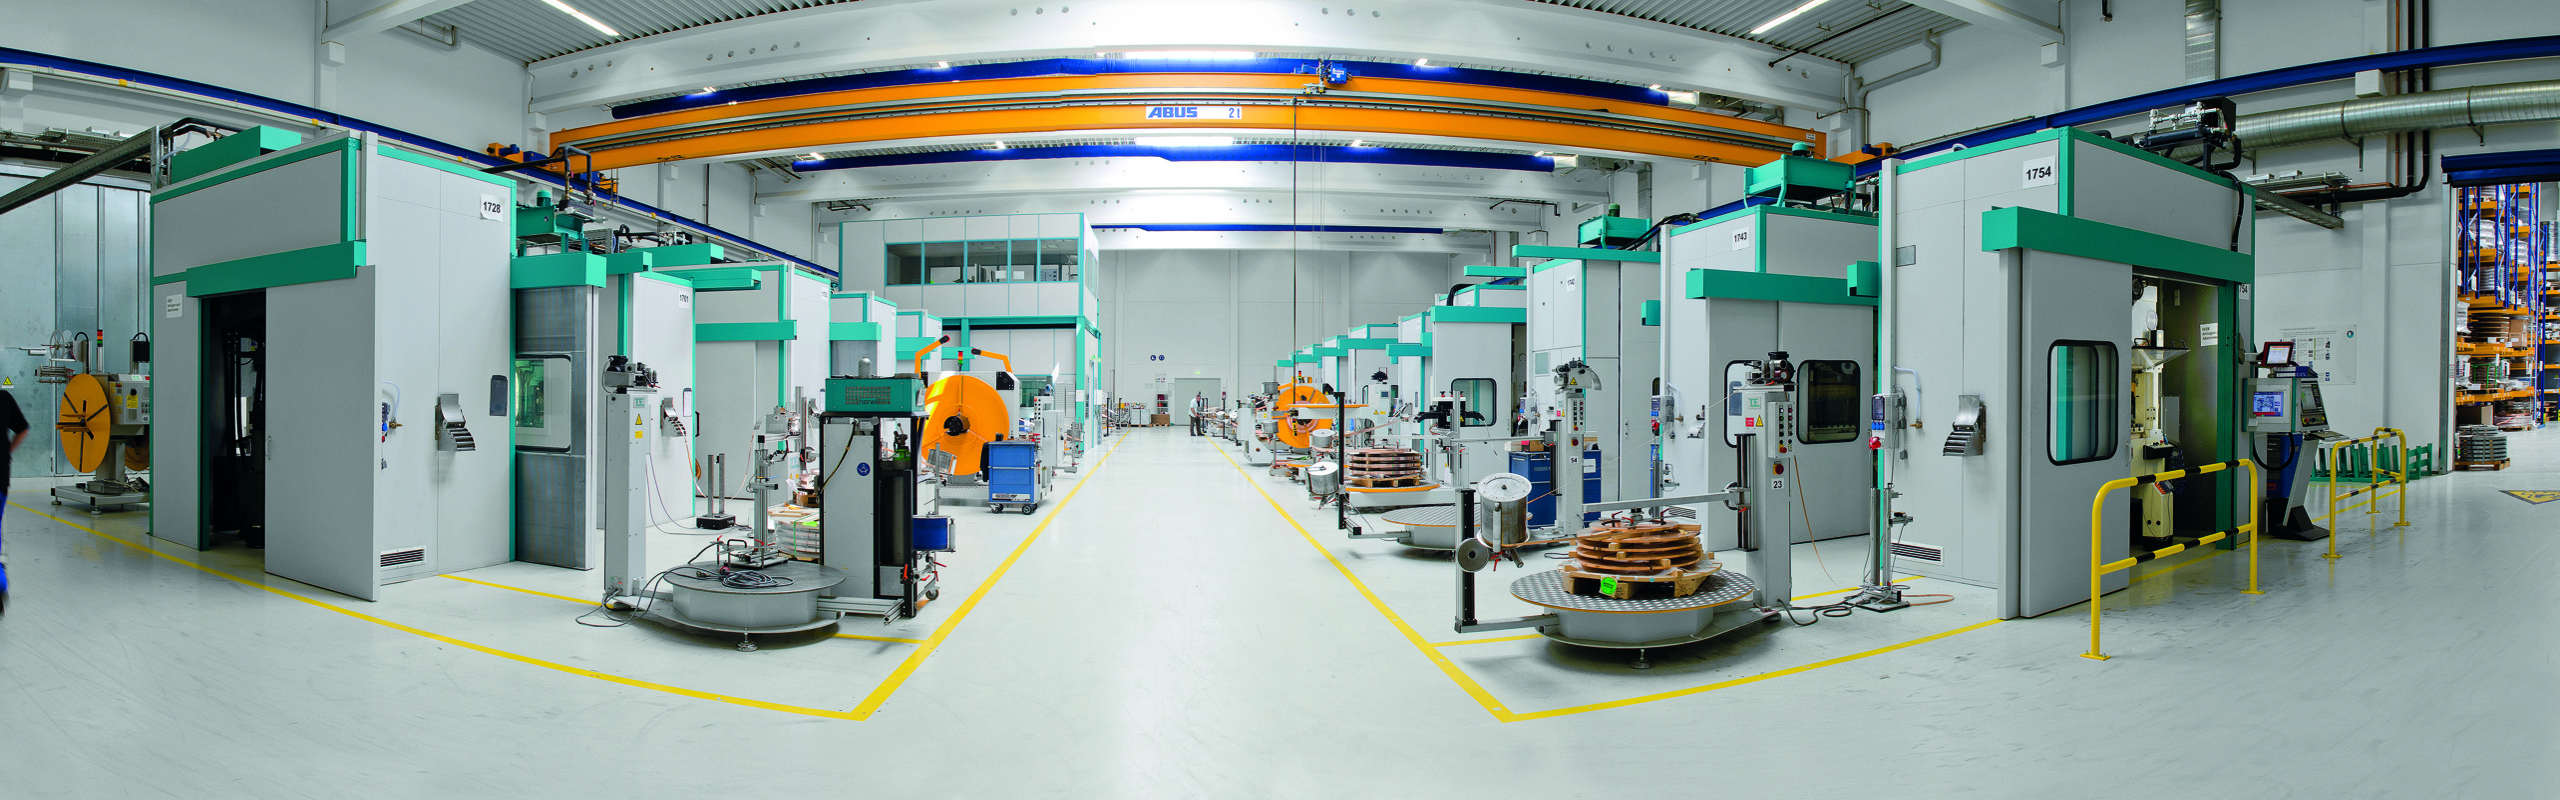 The key for transparency and efficiency in manufacturing.